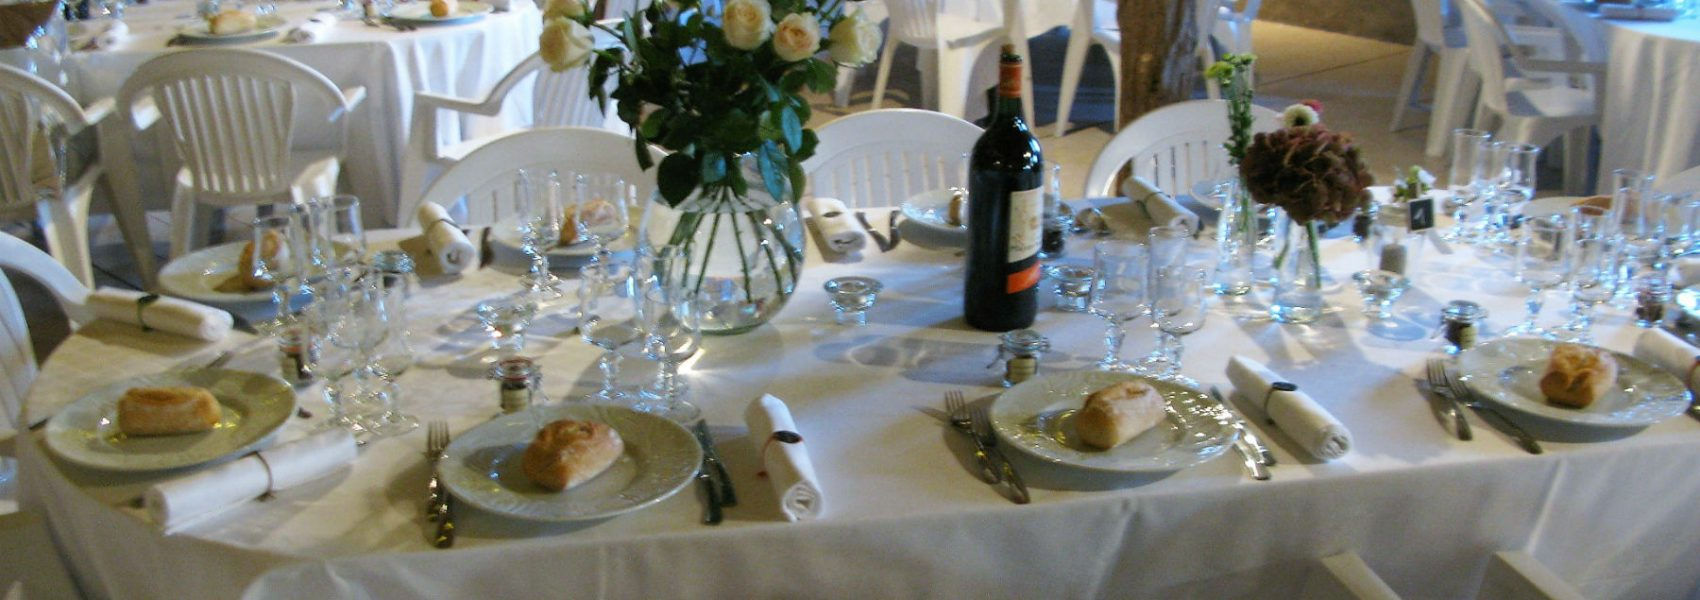 Wedding Table Setting 7